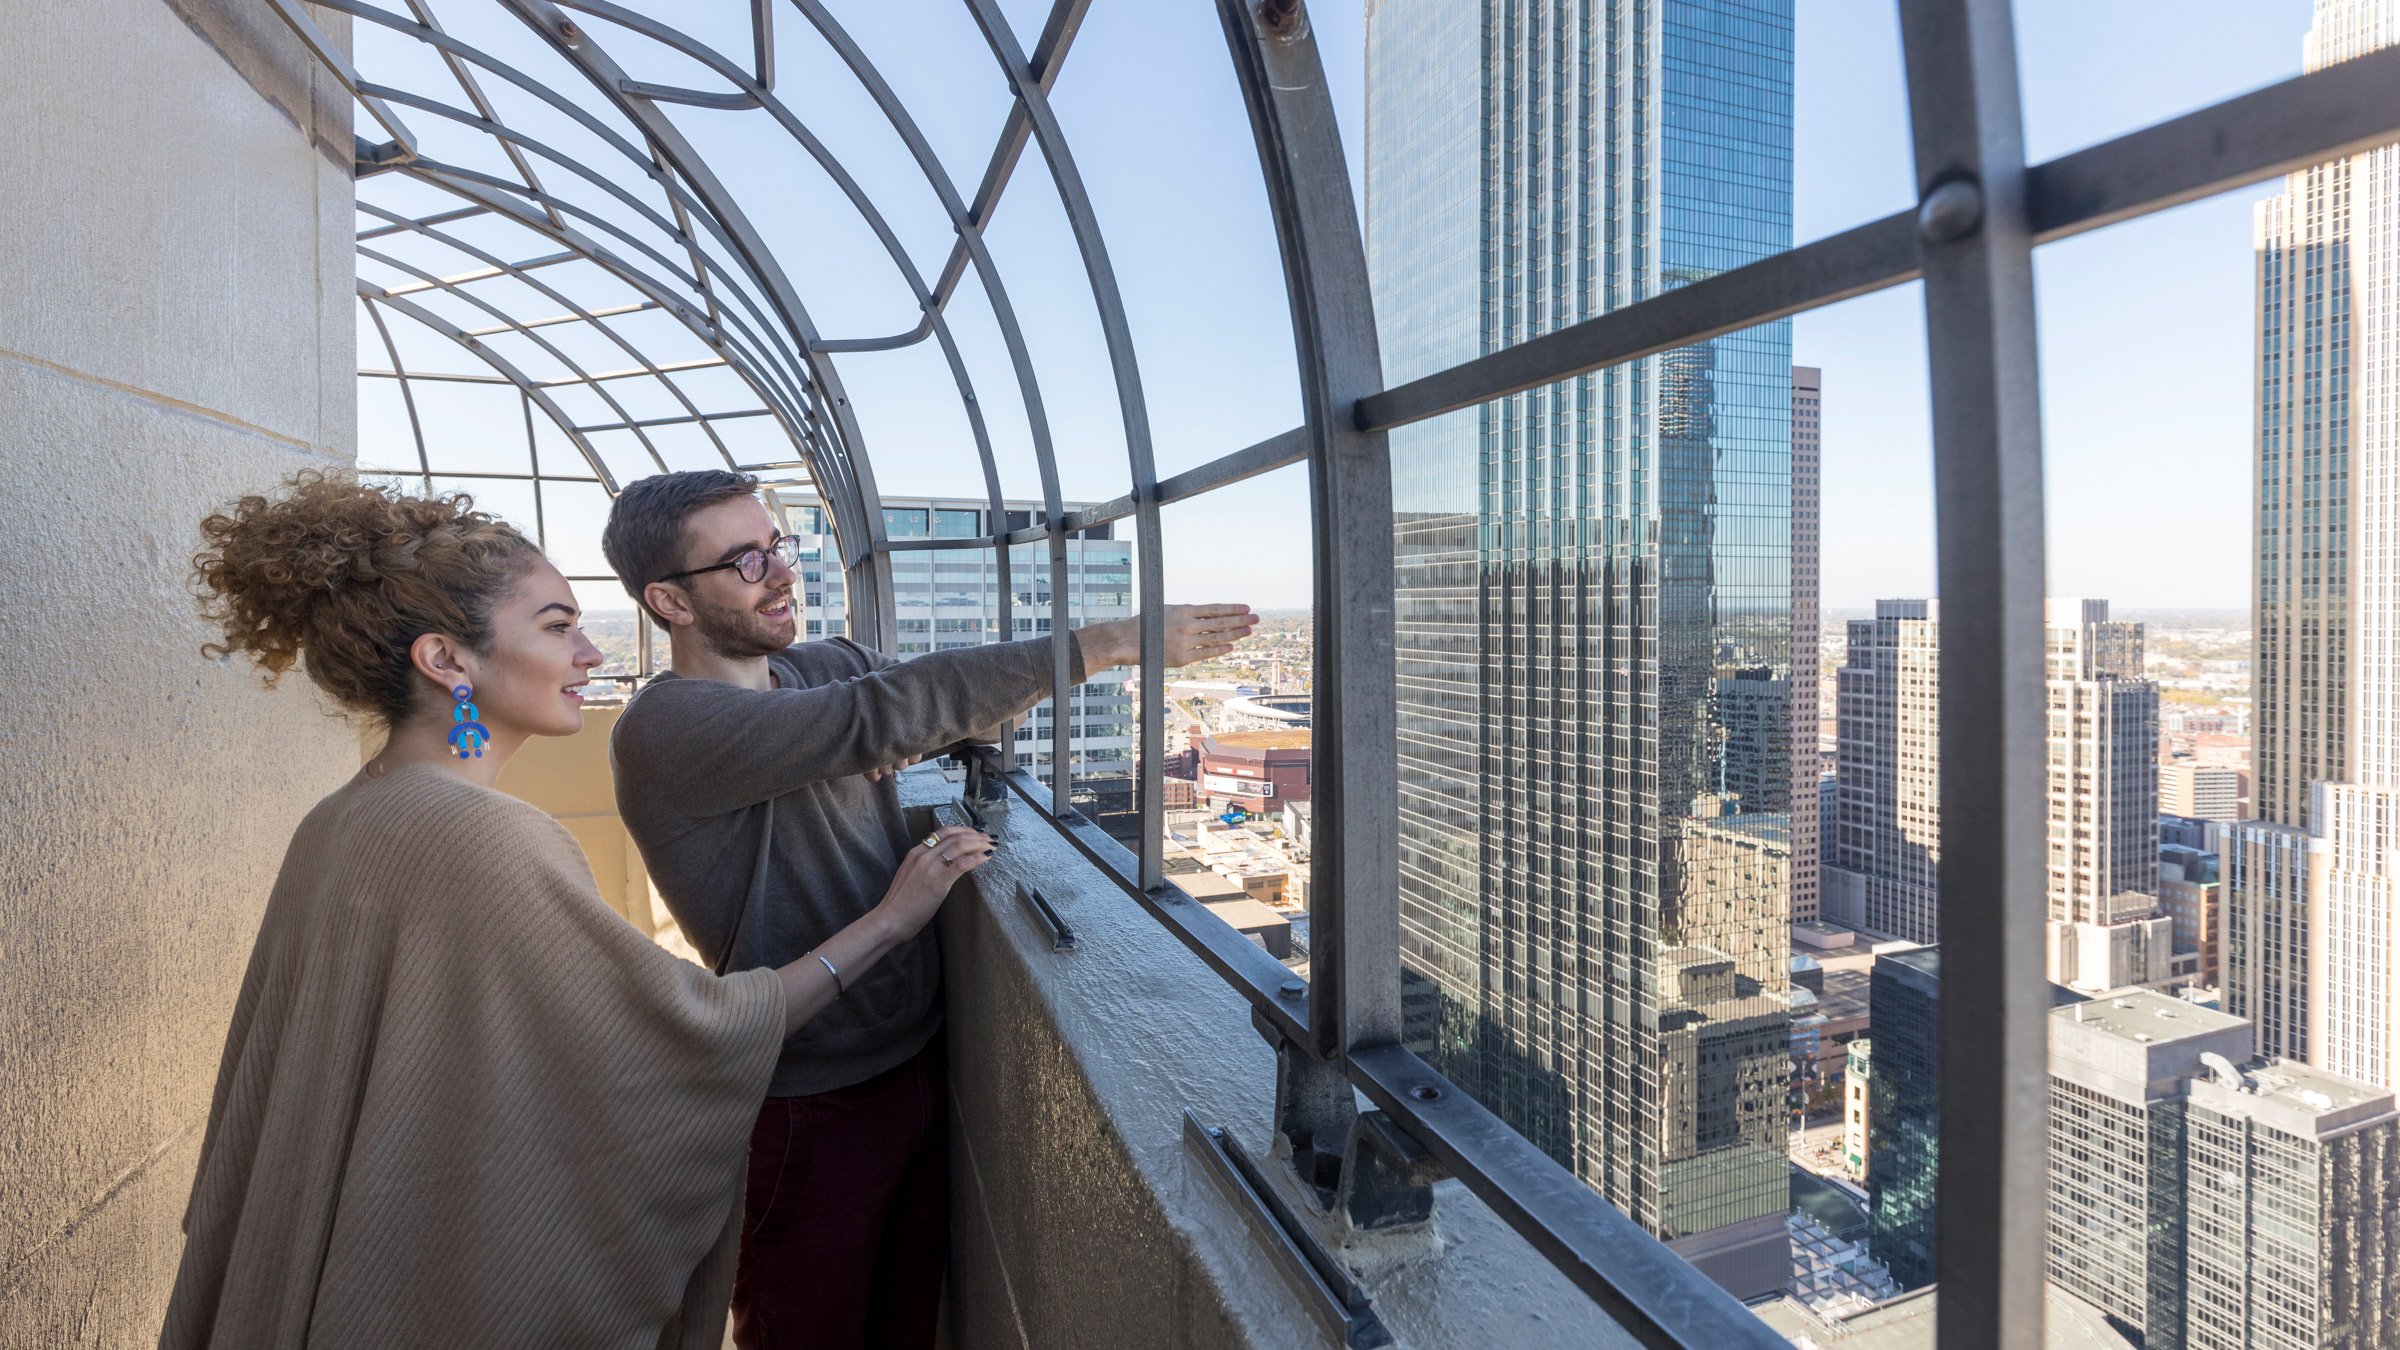 Students looking out from an observation deck at Downtown Minneapolis.